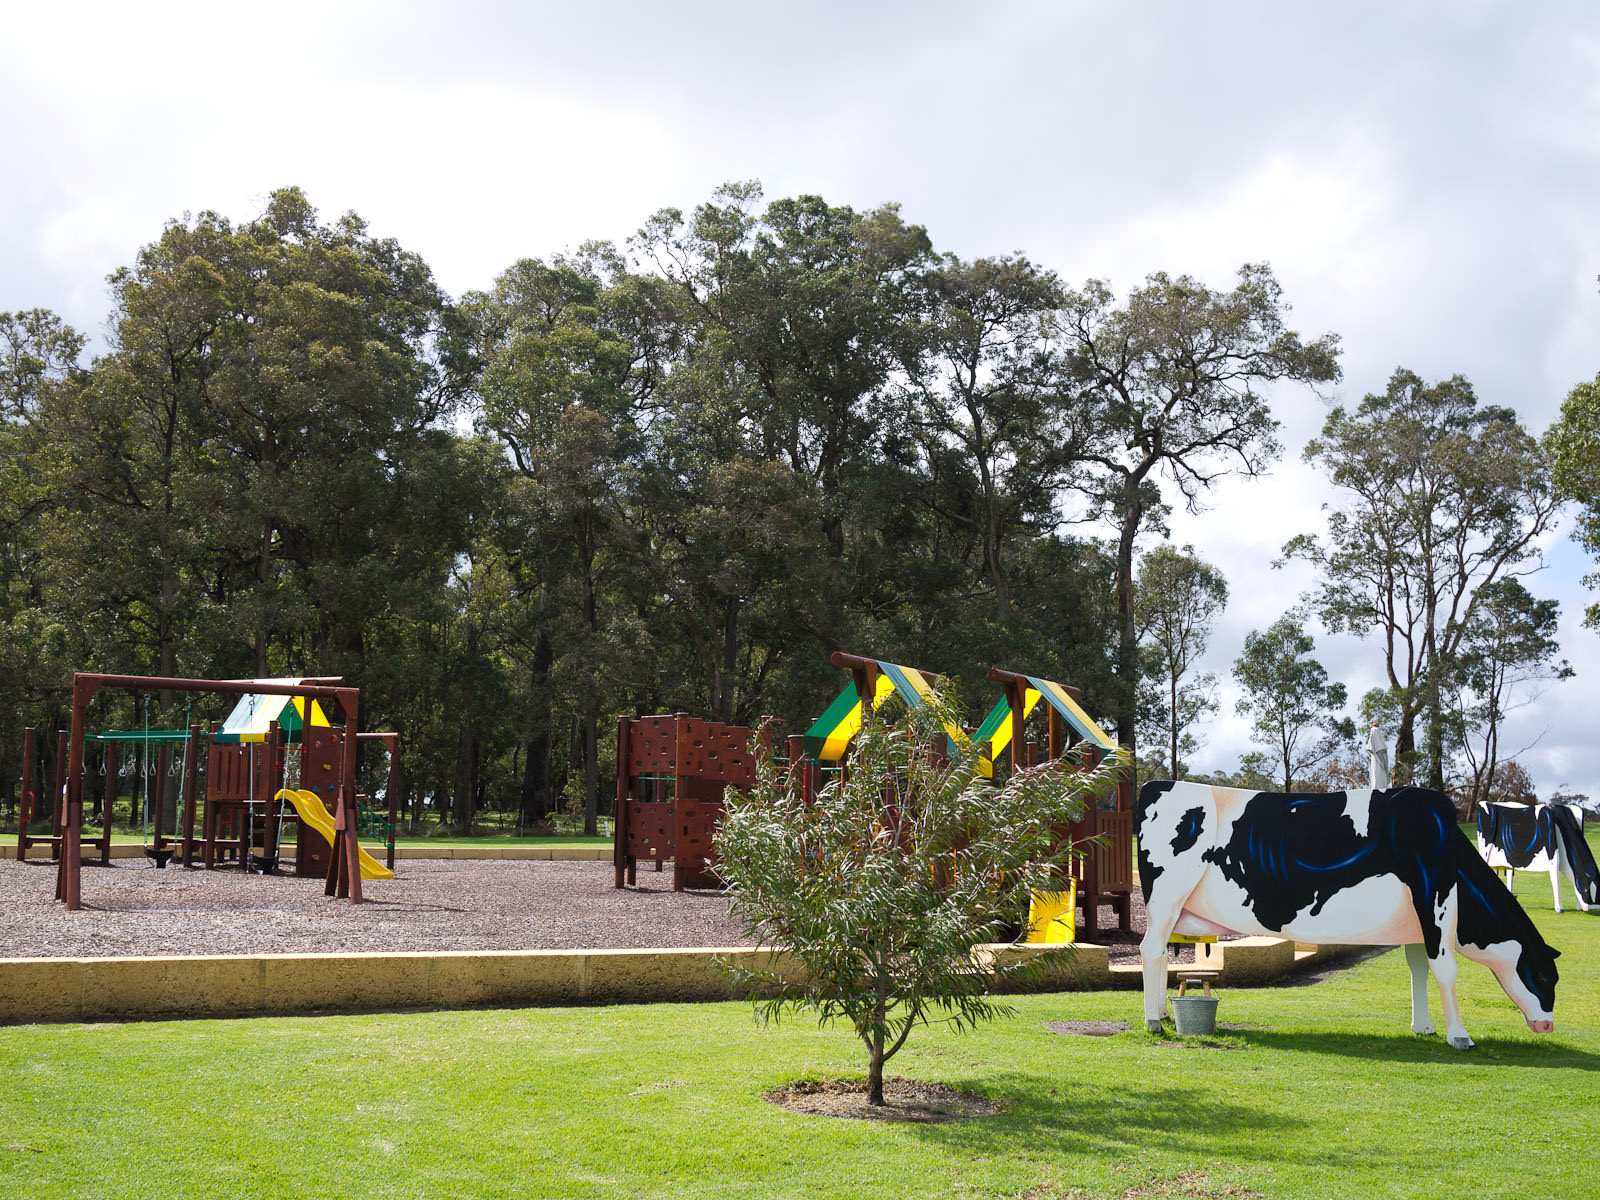 Cows and playground